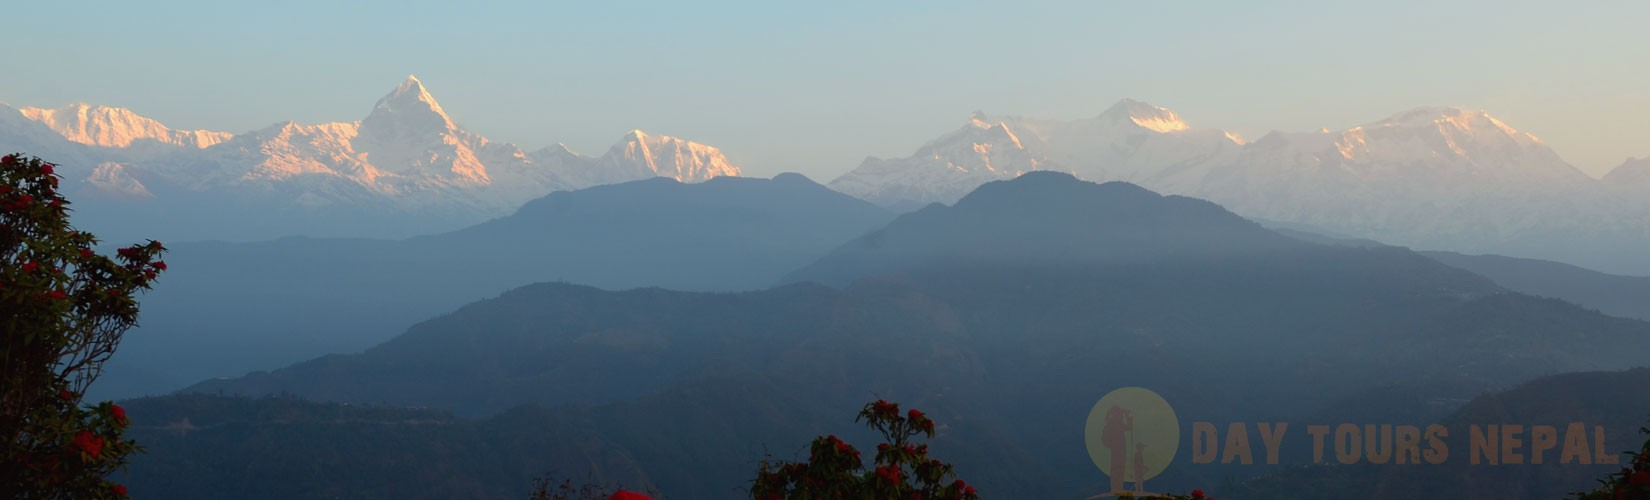 Day Hiking Trips from Pokhara